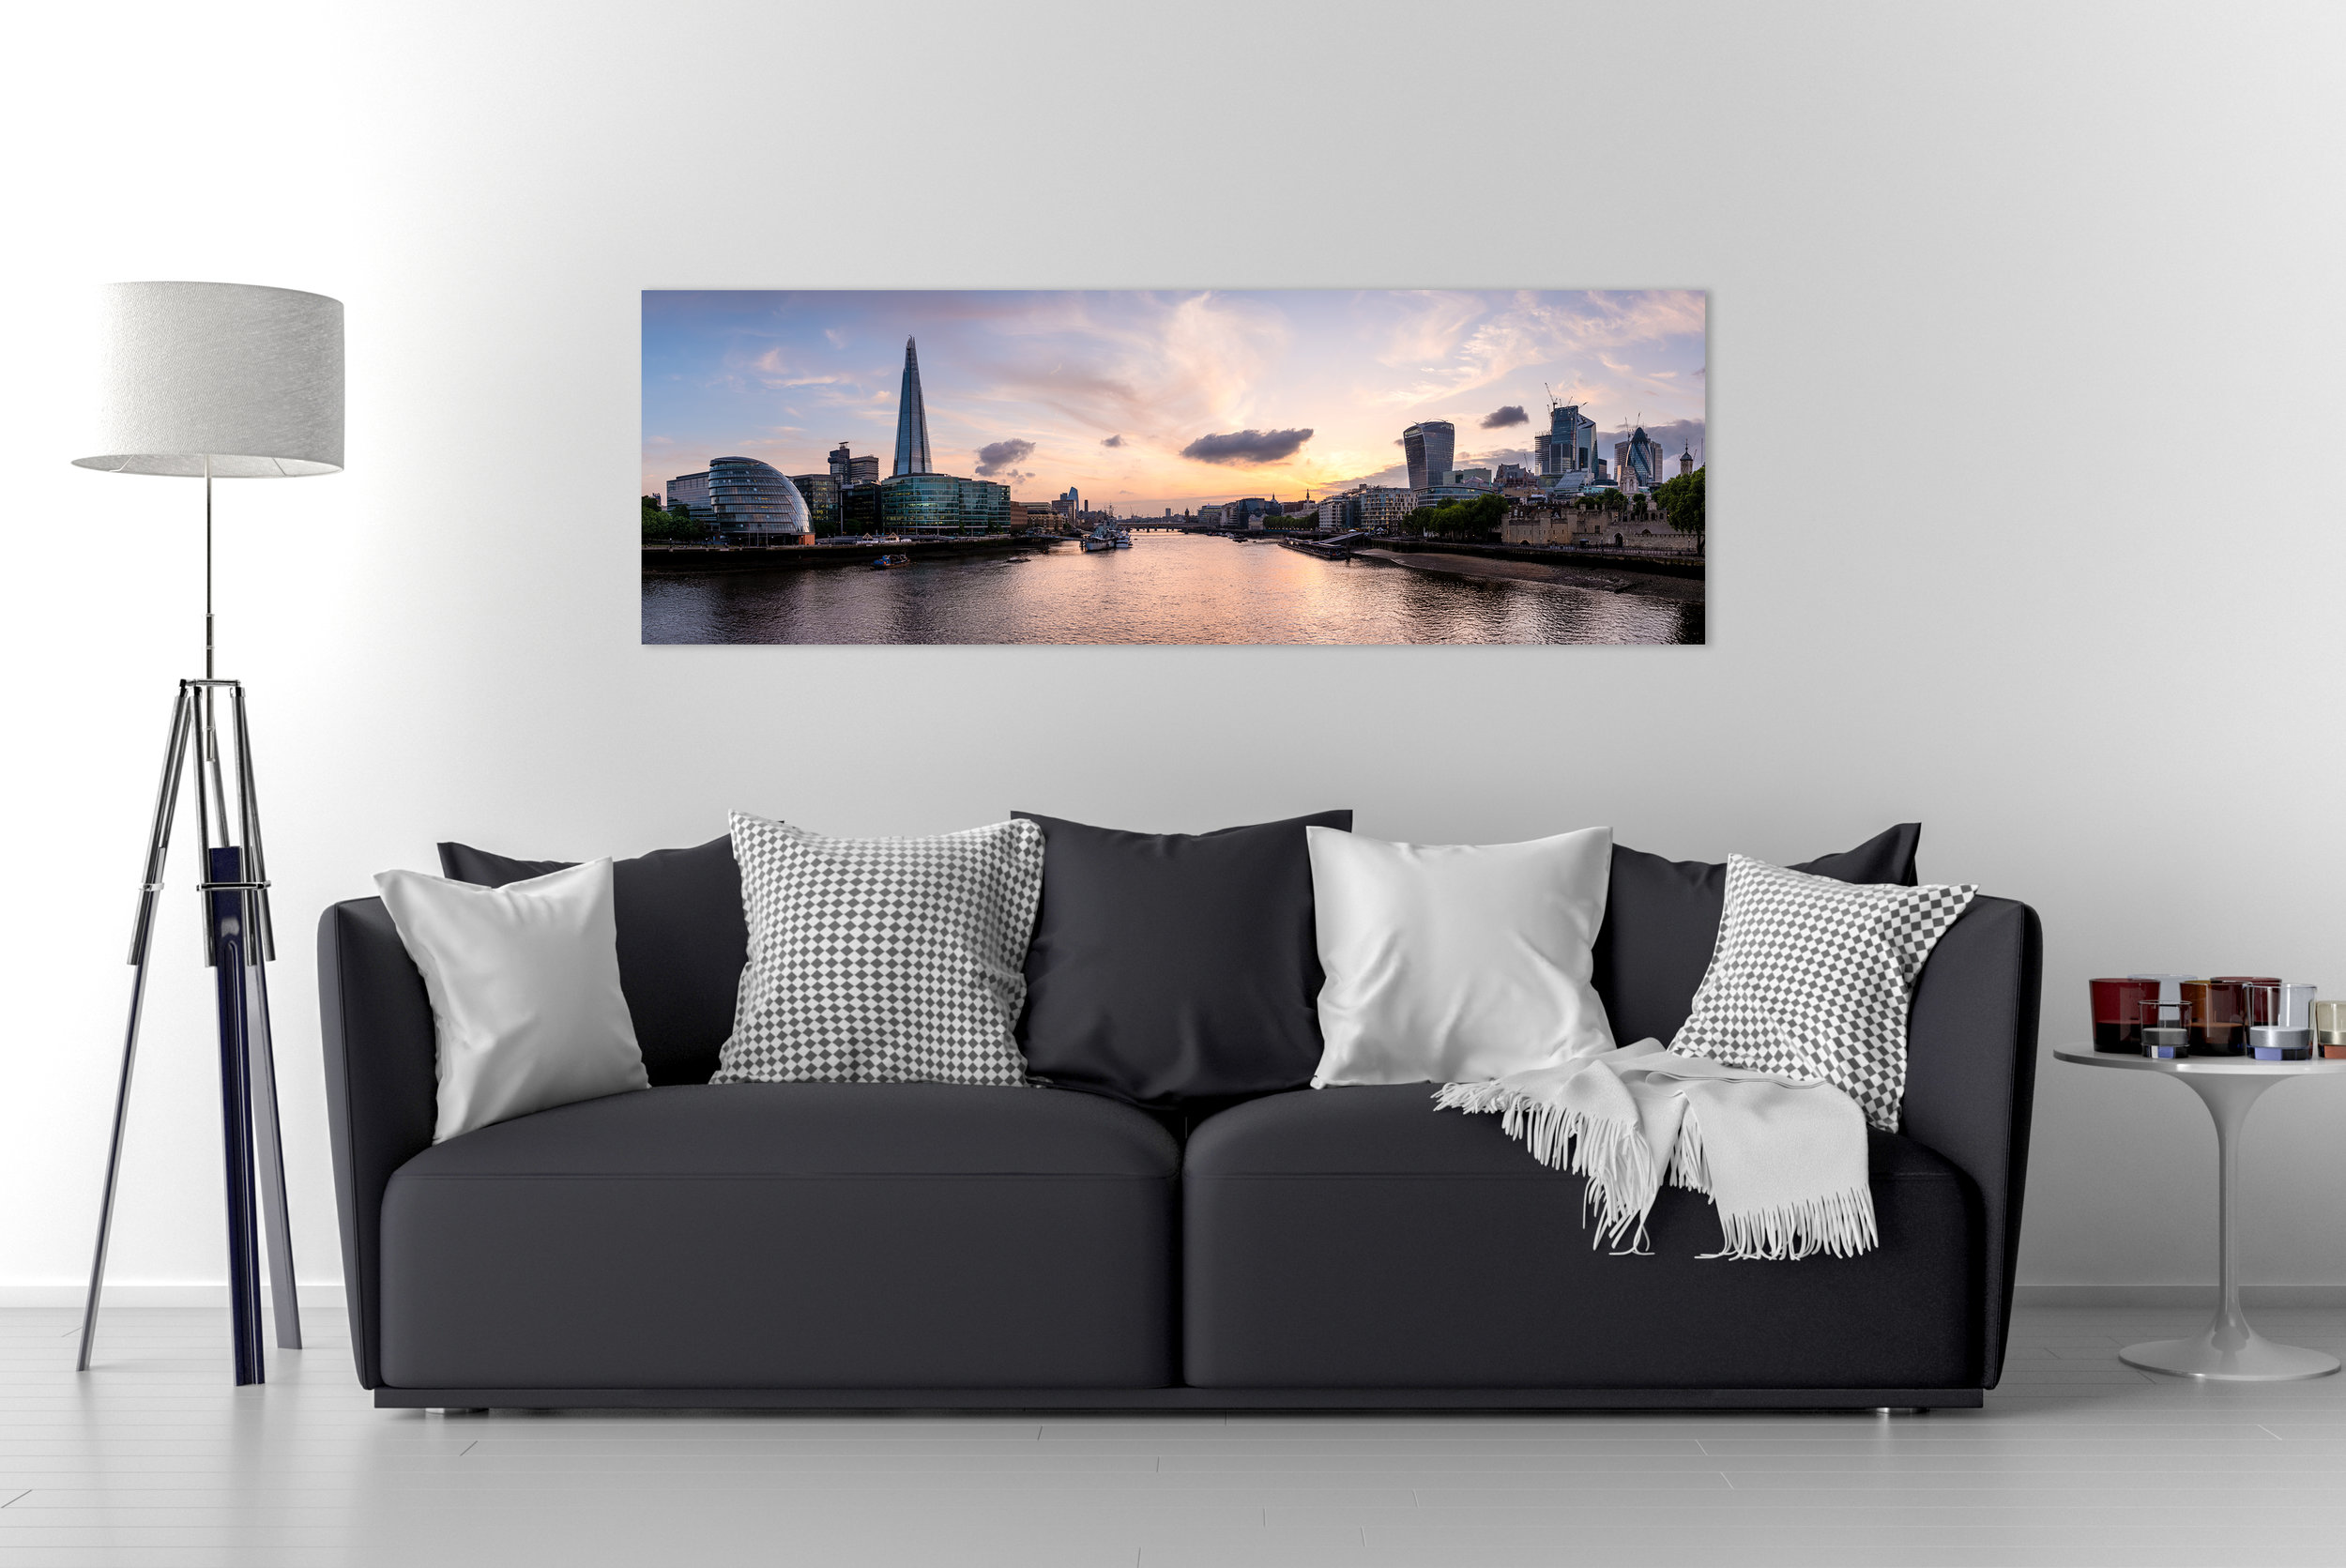 Panoramic Wall Art - Create a high impact focal point for any room featuring one of my super high resolution panoramic images printed on either Acrylic of Aluminium